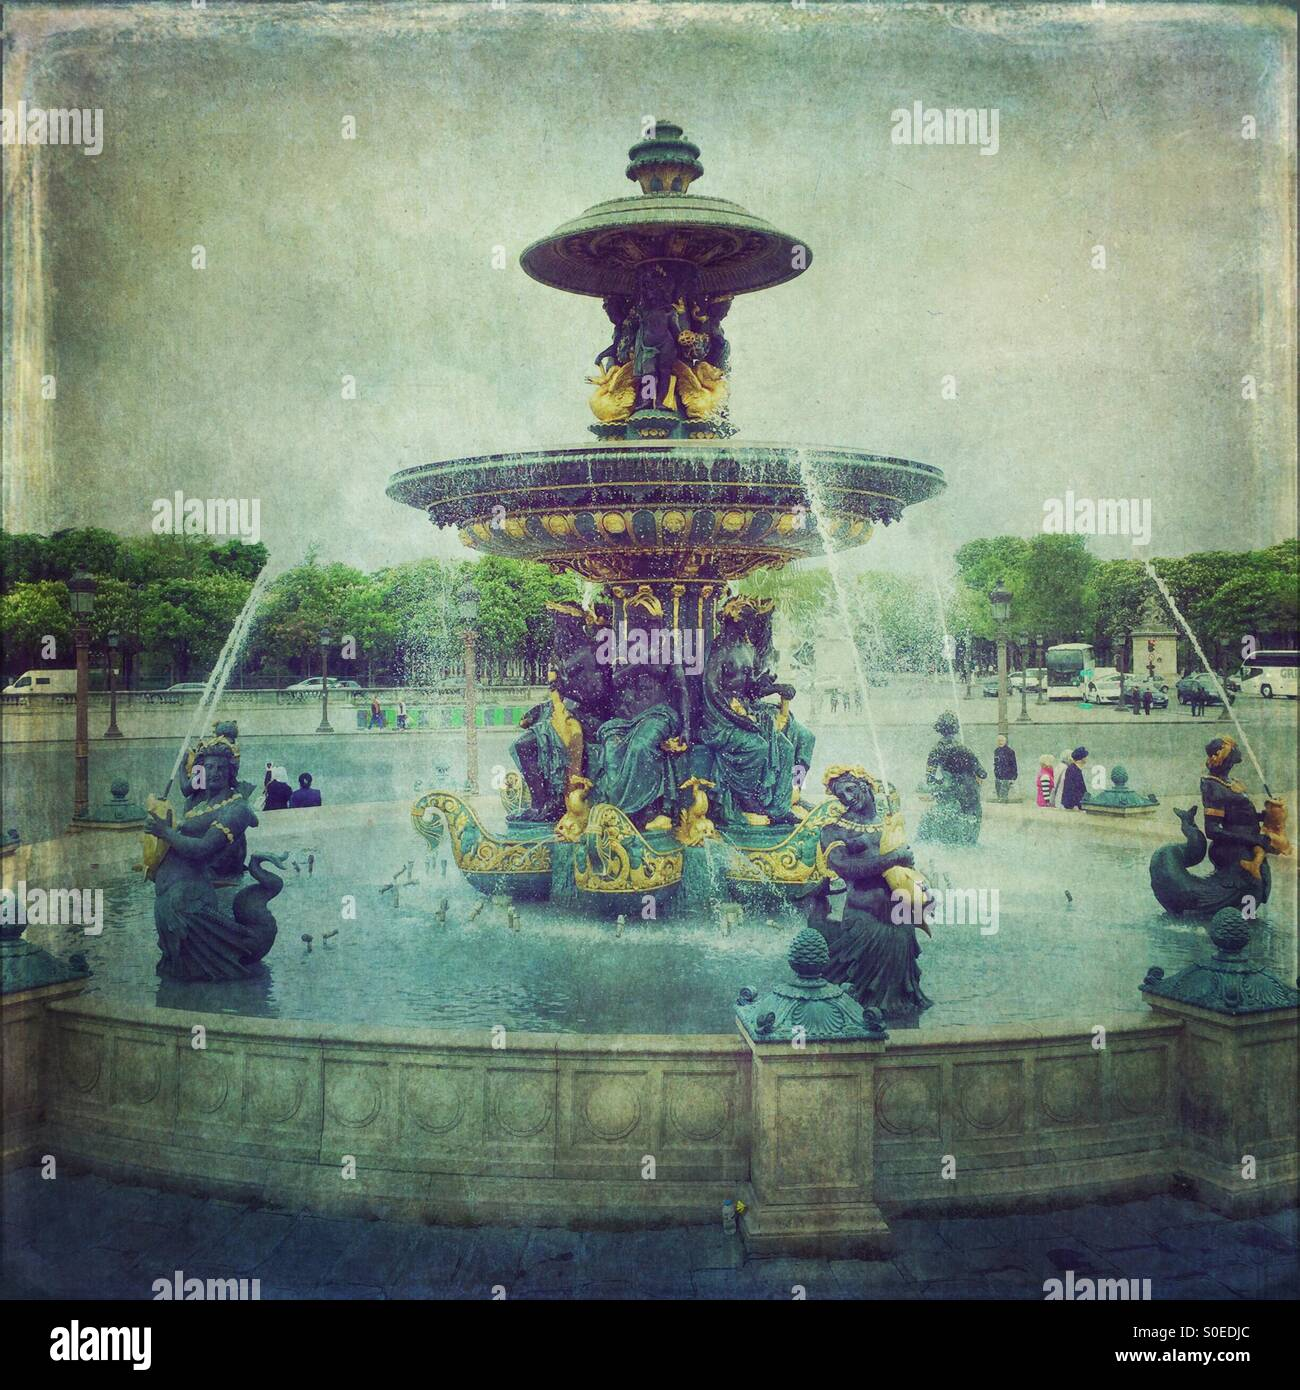 Fountain of River Commerce and Navigation at Place de la Concorde, a major public square in Paris, France. Located Stock Photo